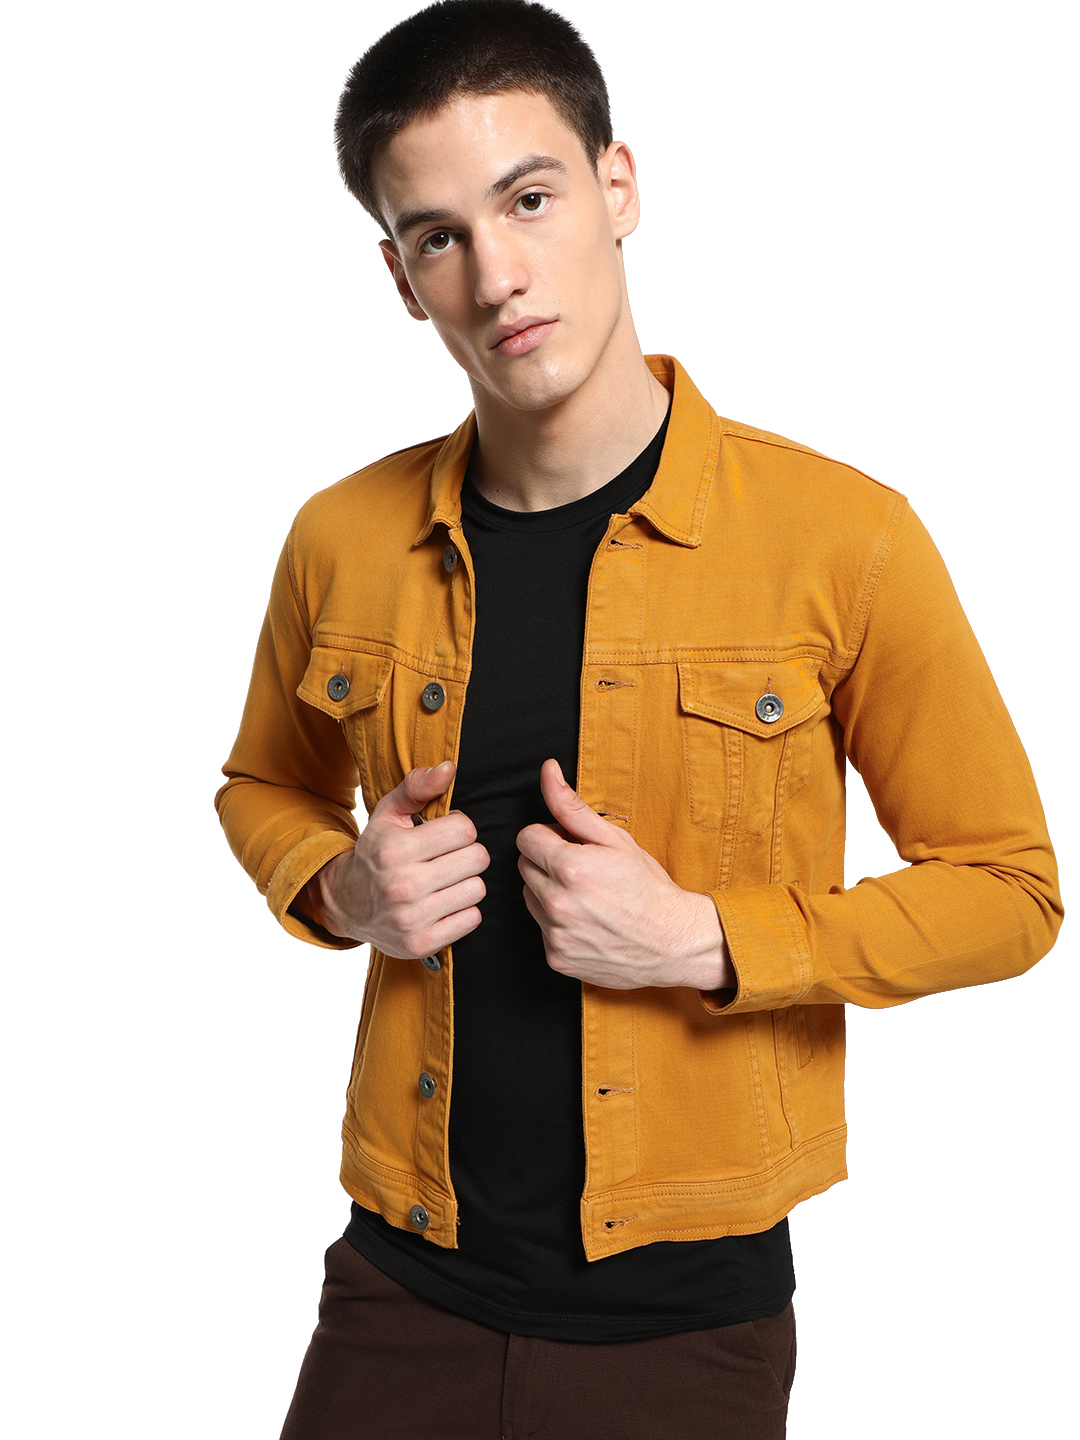 K Denim Yellow KOOVS Overdyed Trucker Denim Jacket 1